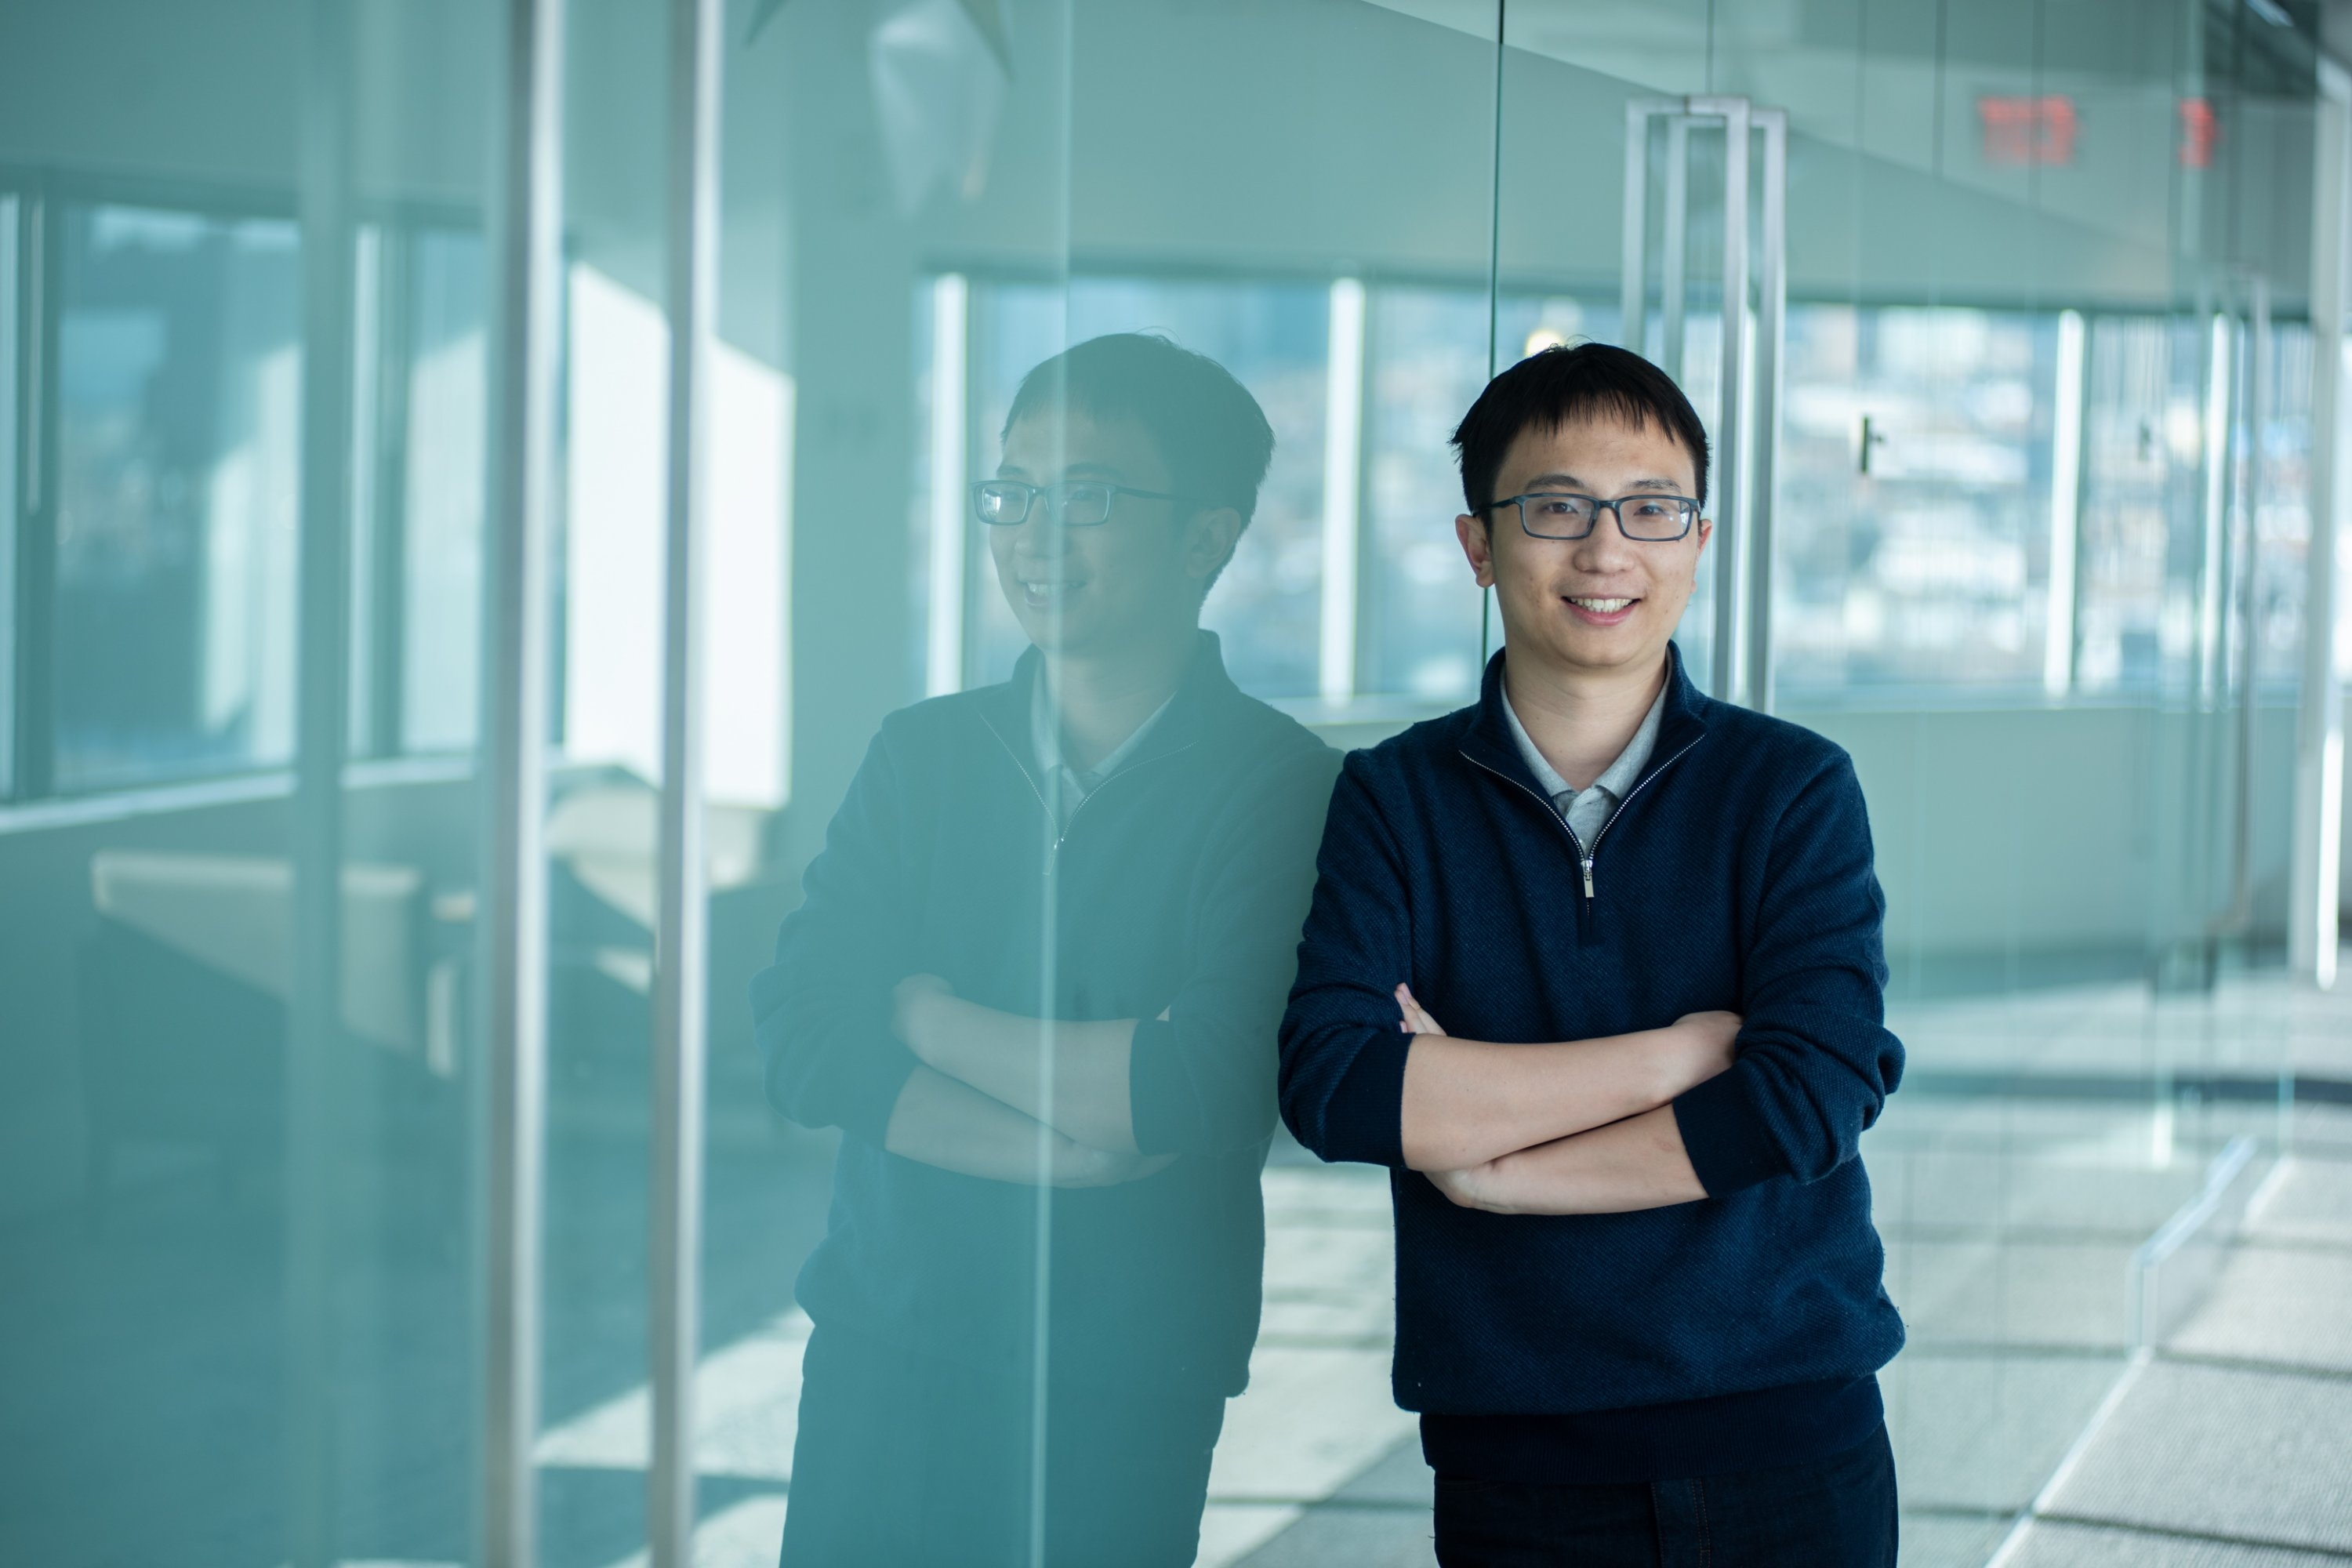 Accelerating AI at the speed of light